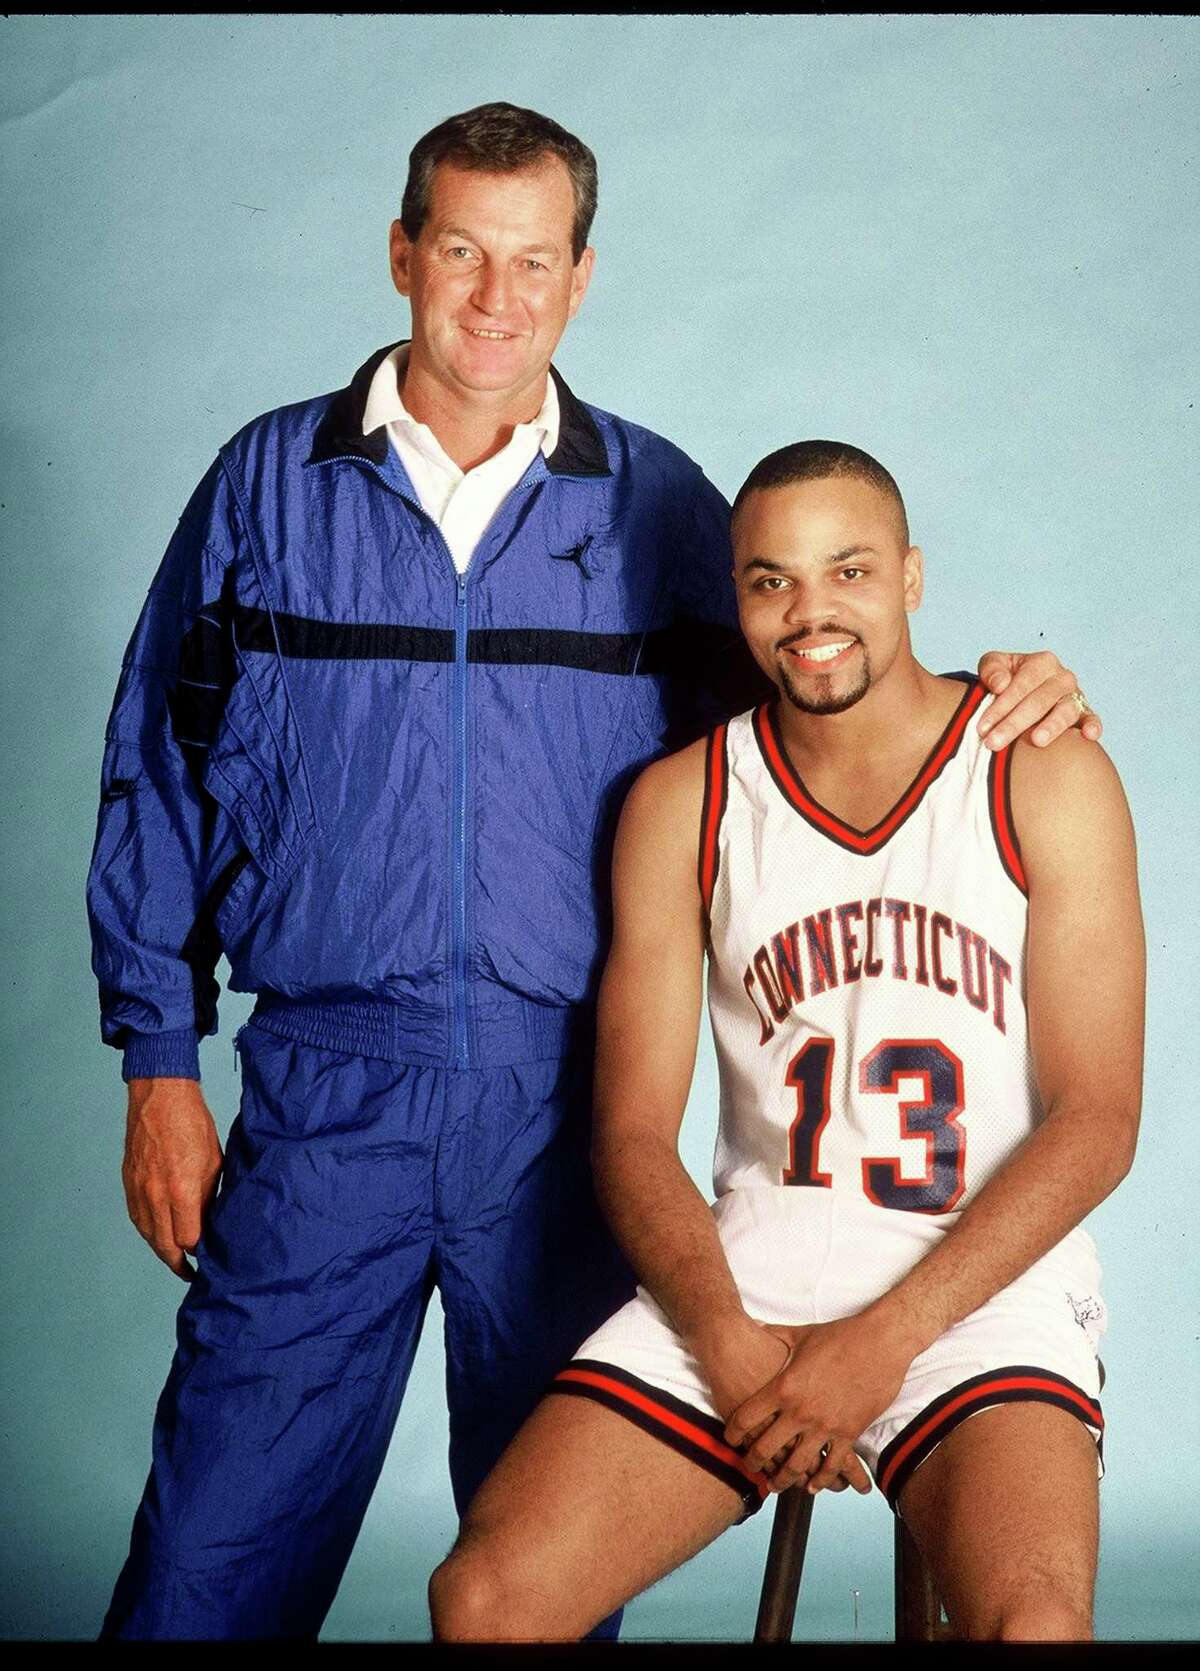 UConn coach Jim Calhoun and star guard Chris Smith pose for picture in 1990.